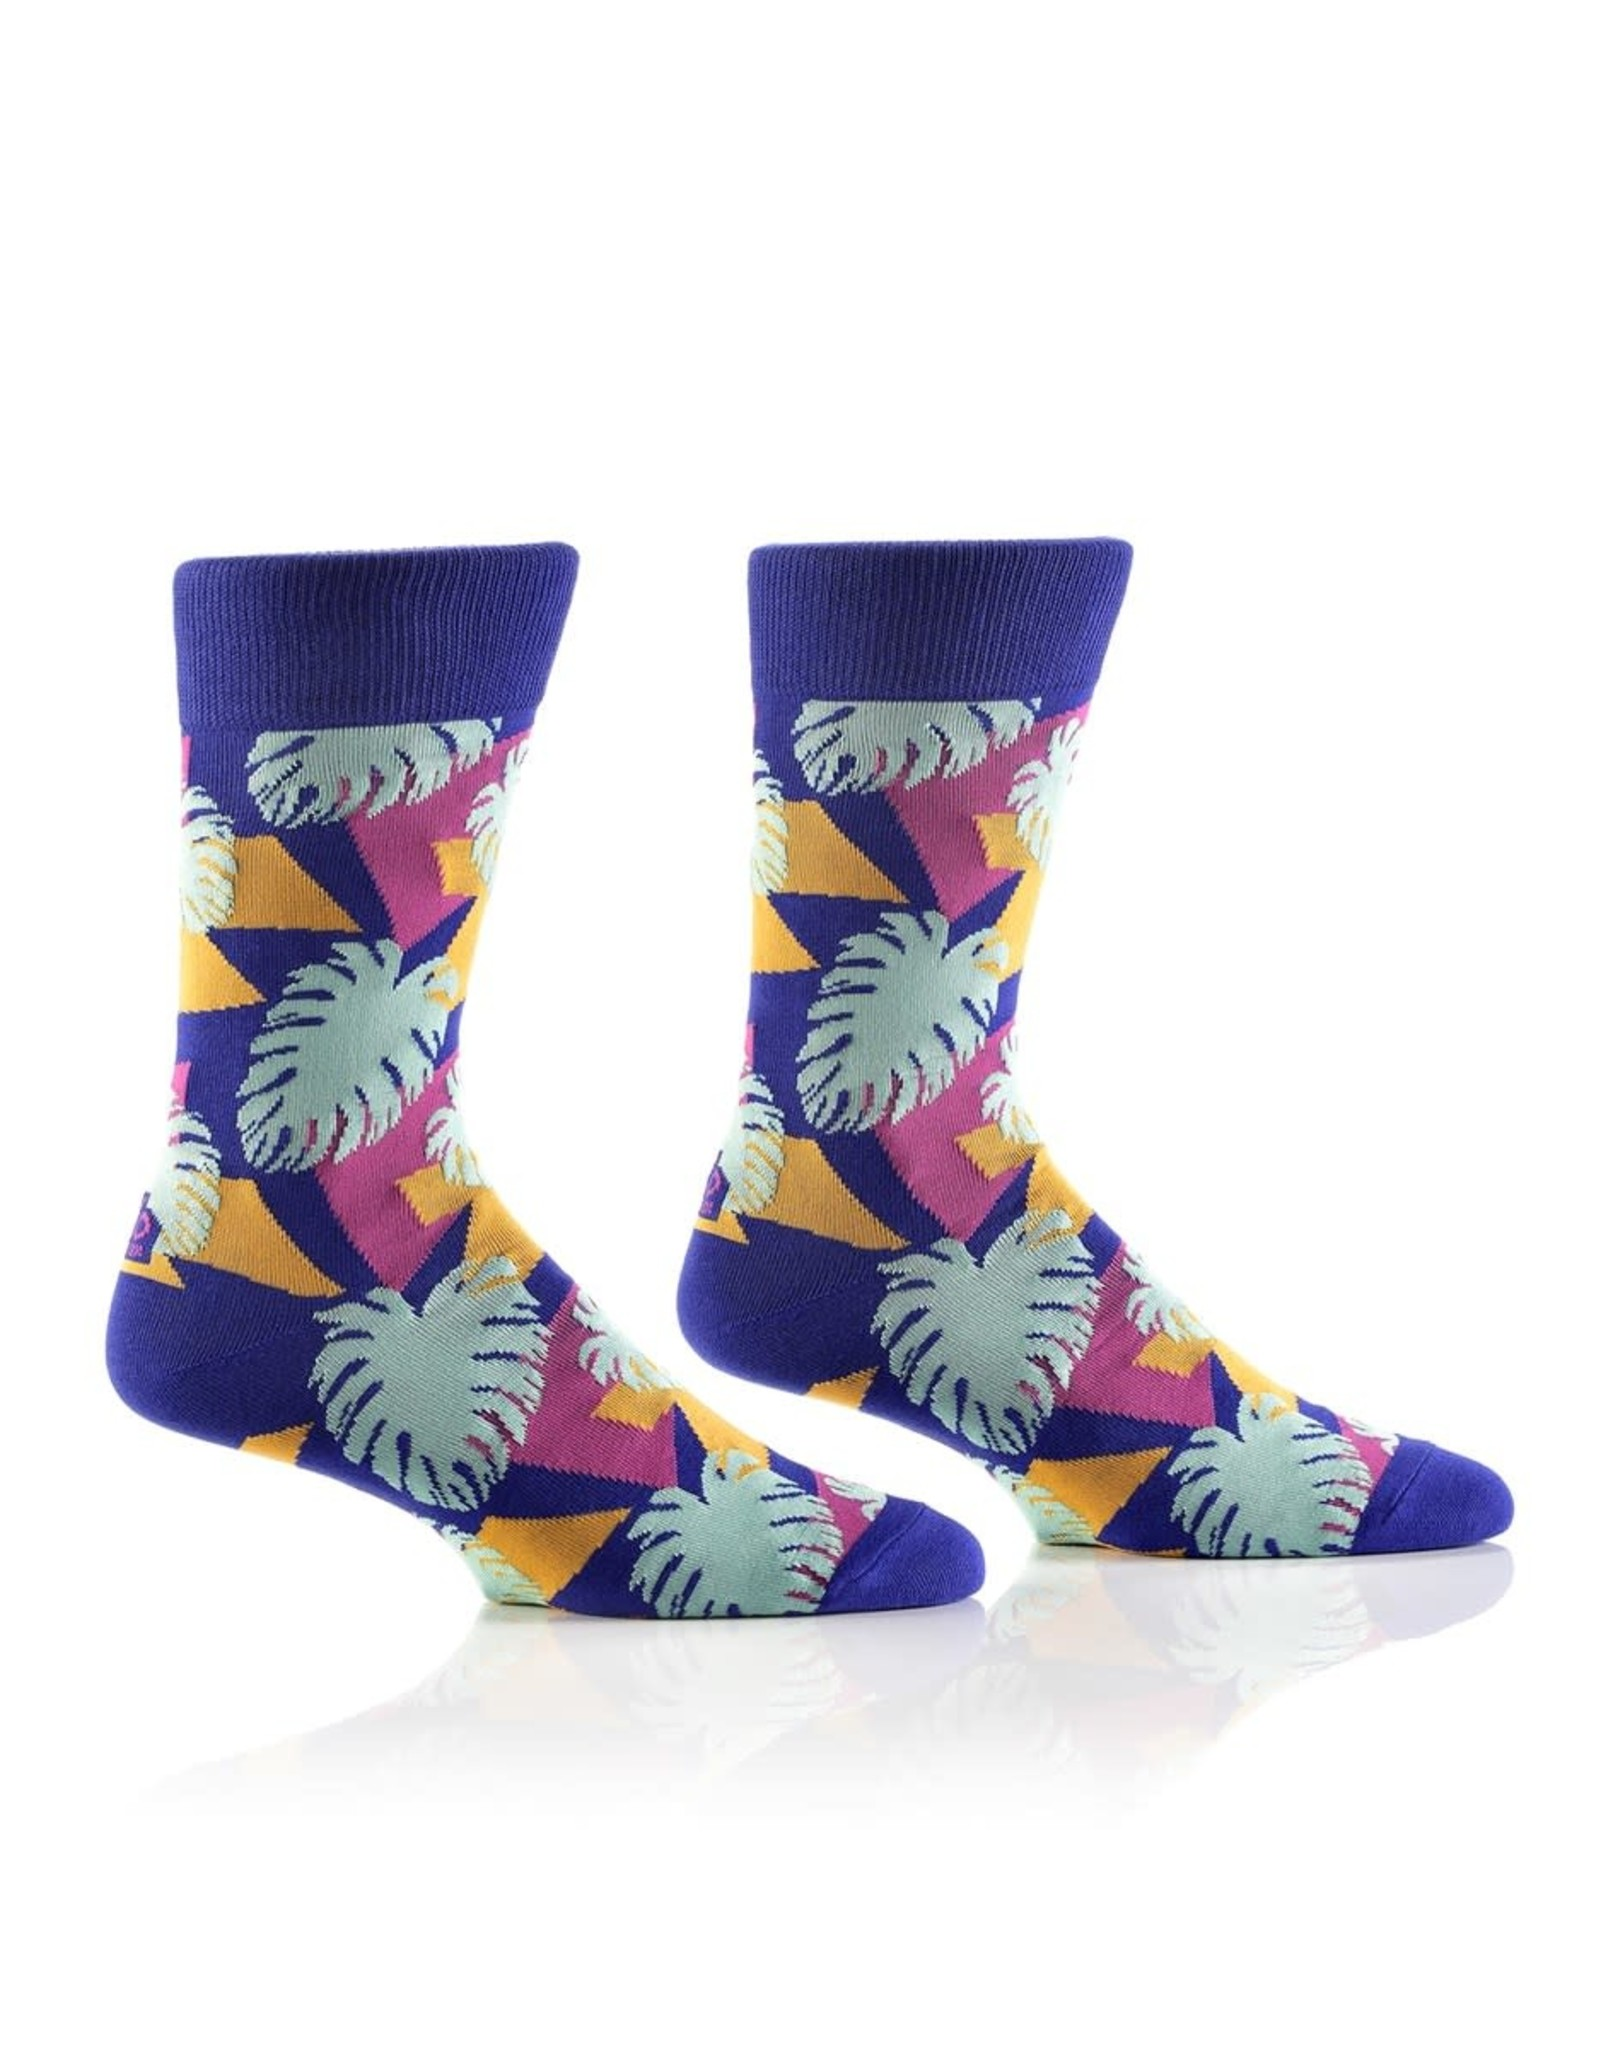 CHAUSSETTES : FEUILLAGES